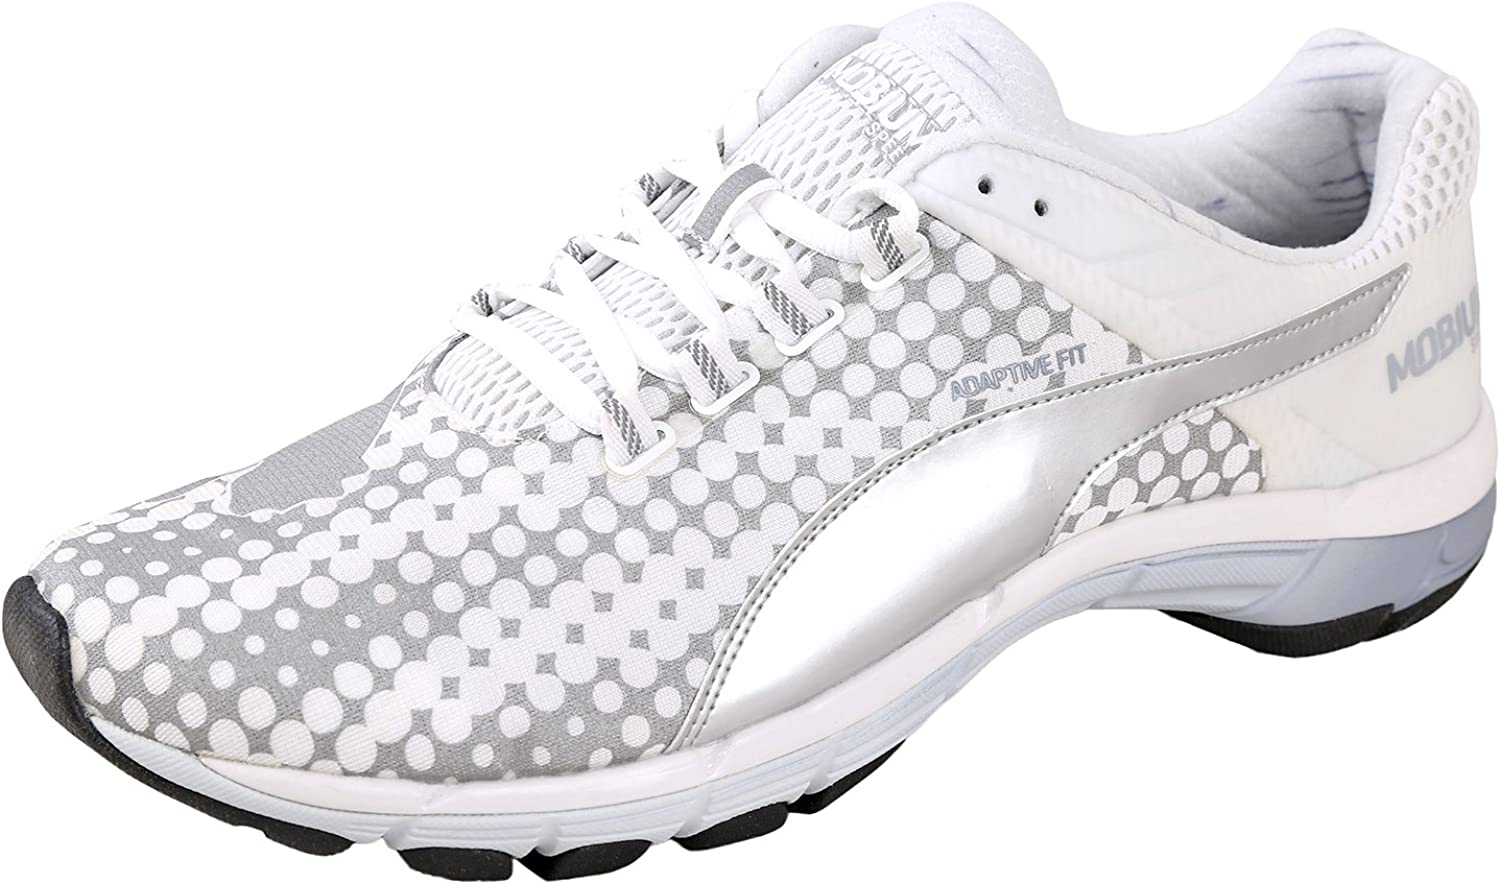 PUMA Men's Mobium Elite Speed Nightcat-M